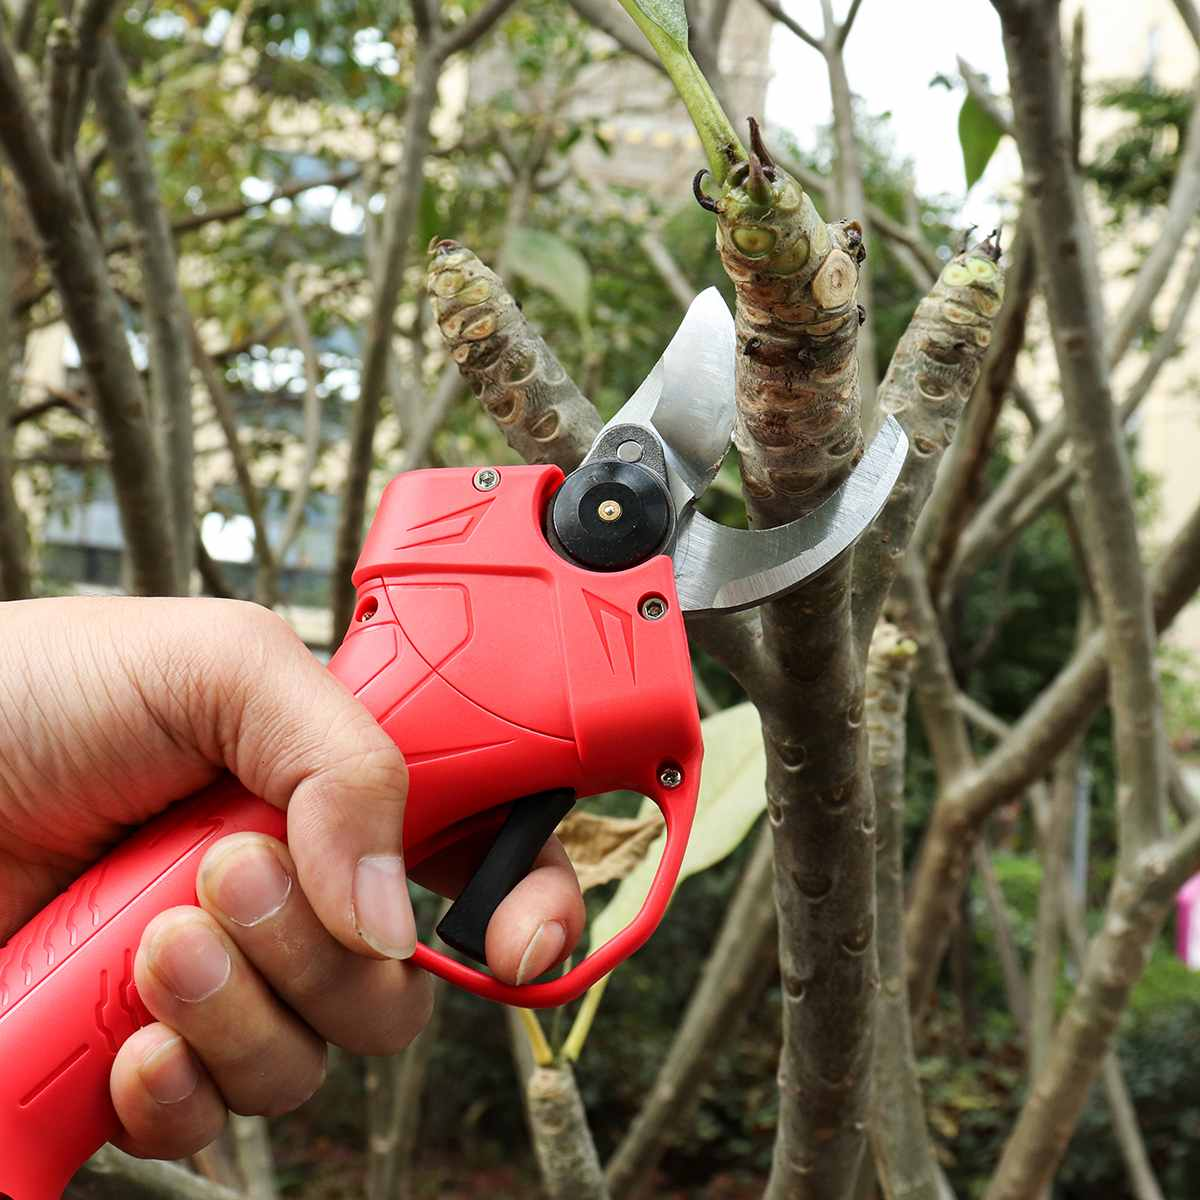 Wireless 16.8V 25mm Electric Garden Scissor for Brach Pruning with Li-ion Battery and USB Charger 16